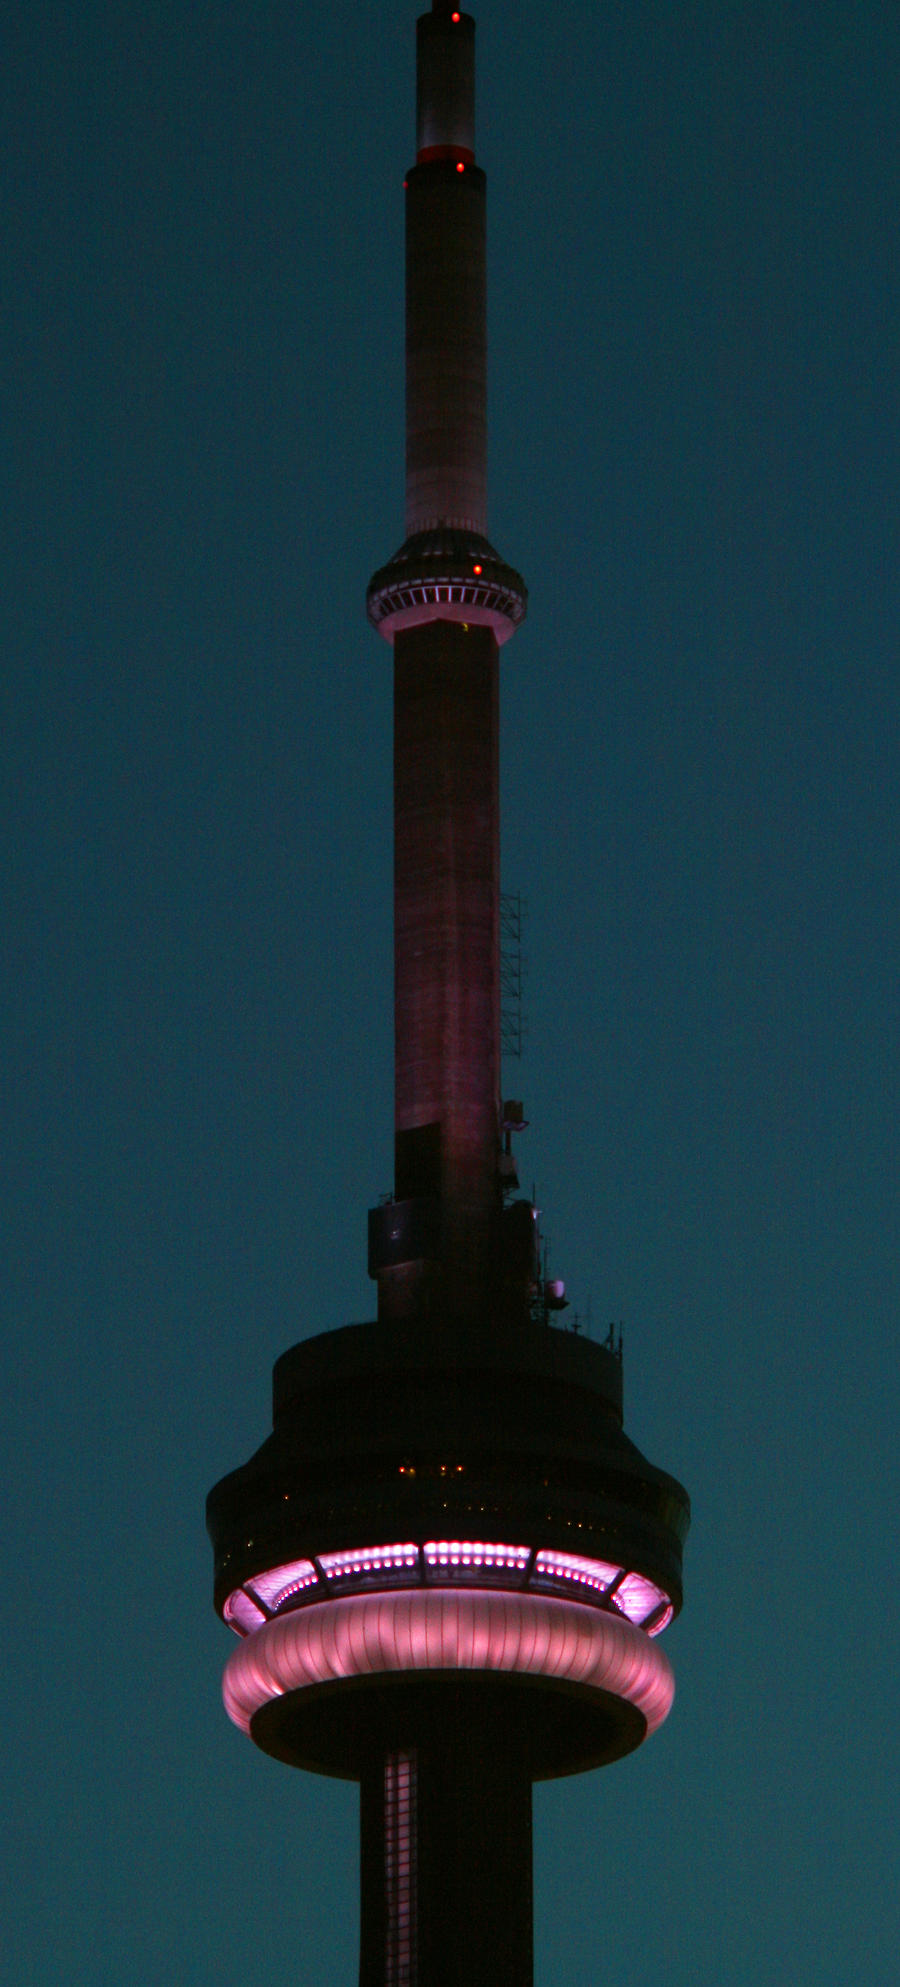 CN Tower at Dusk by vmulligan